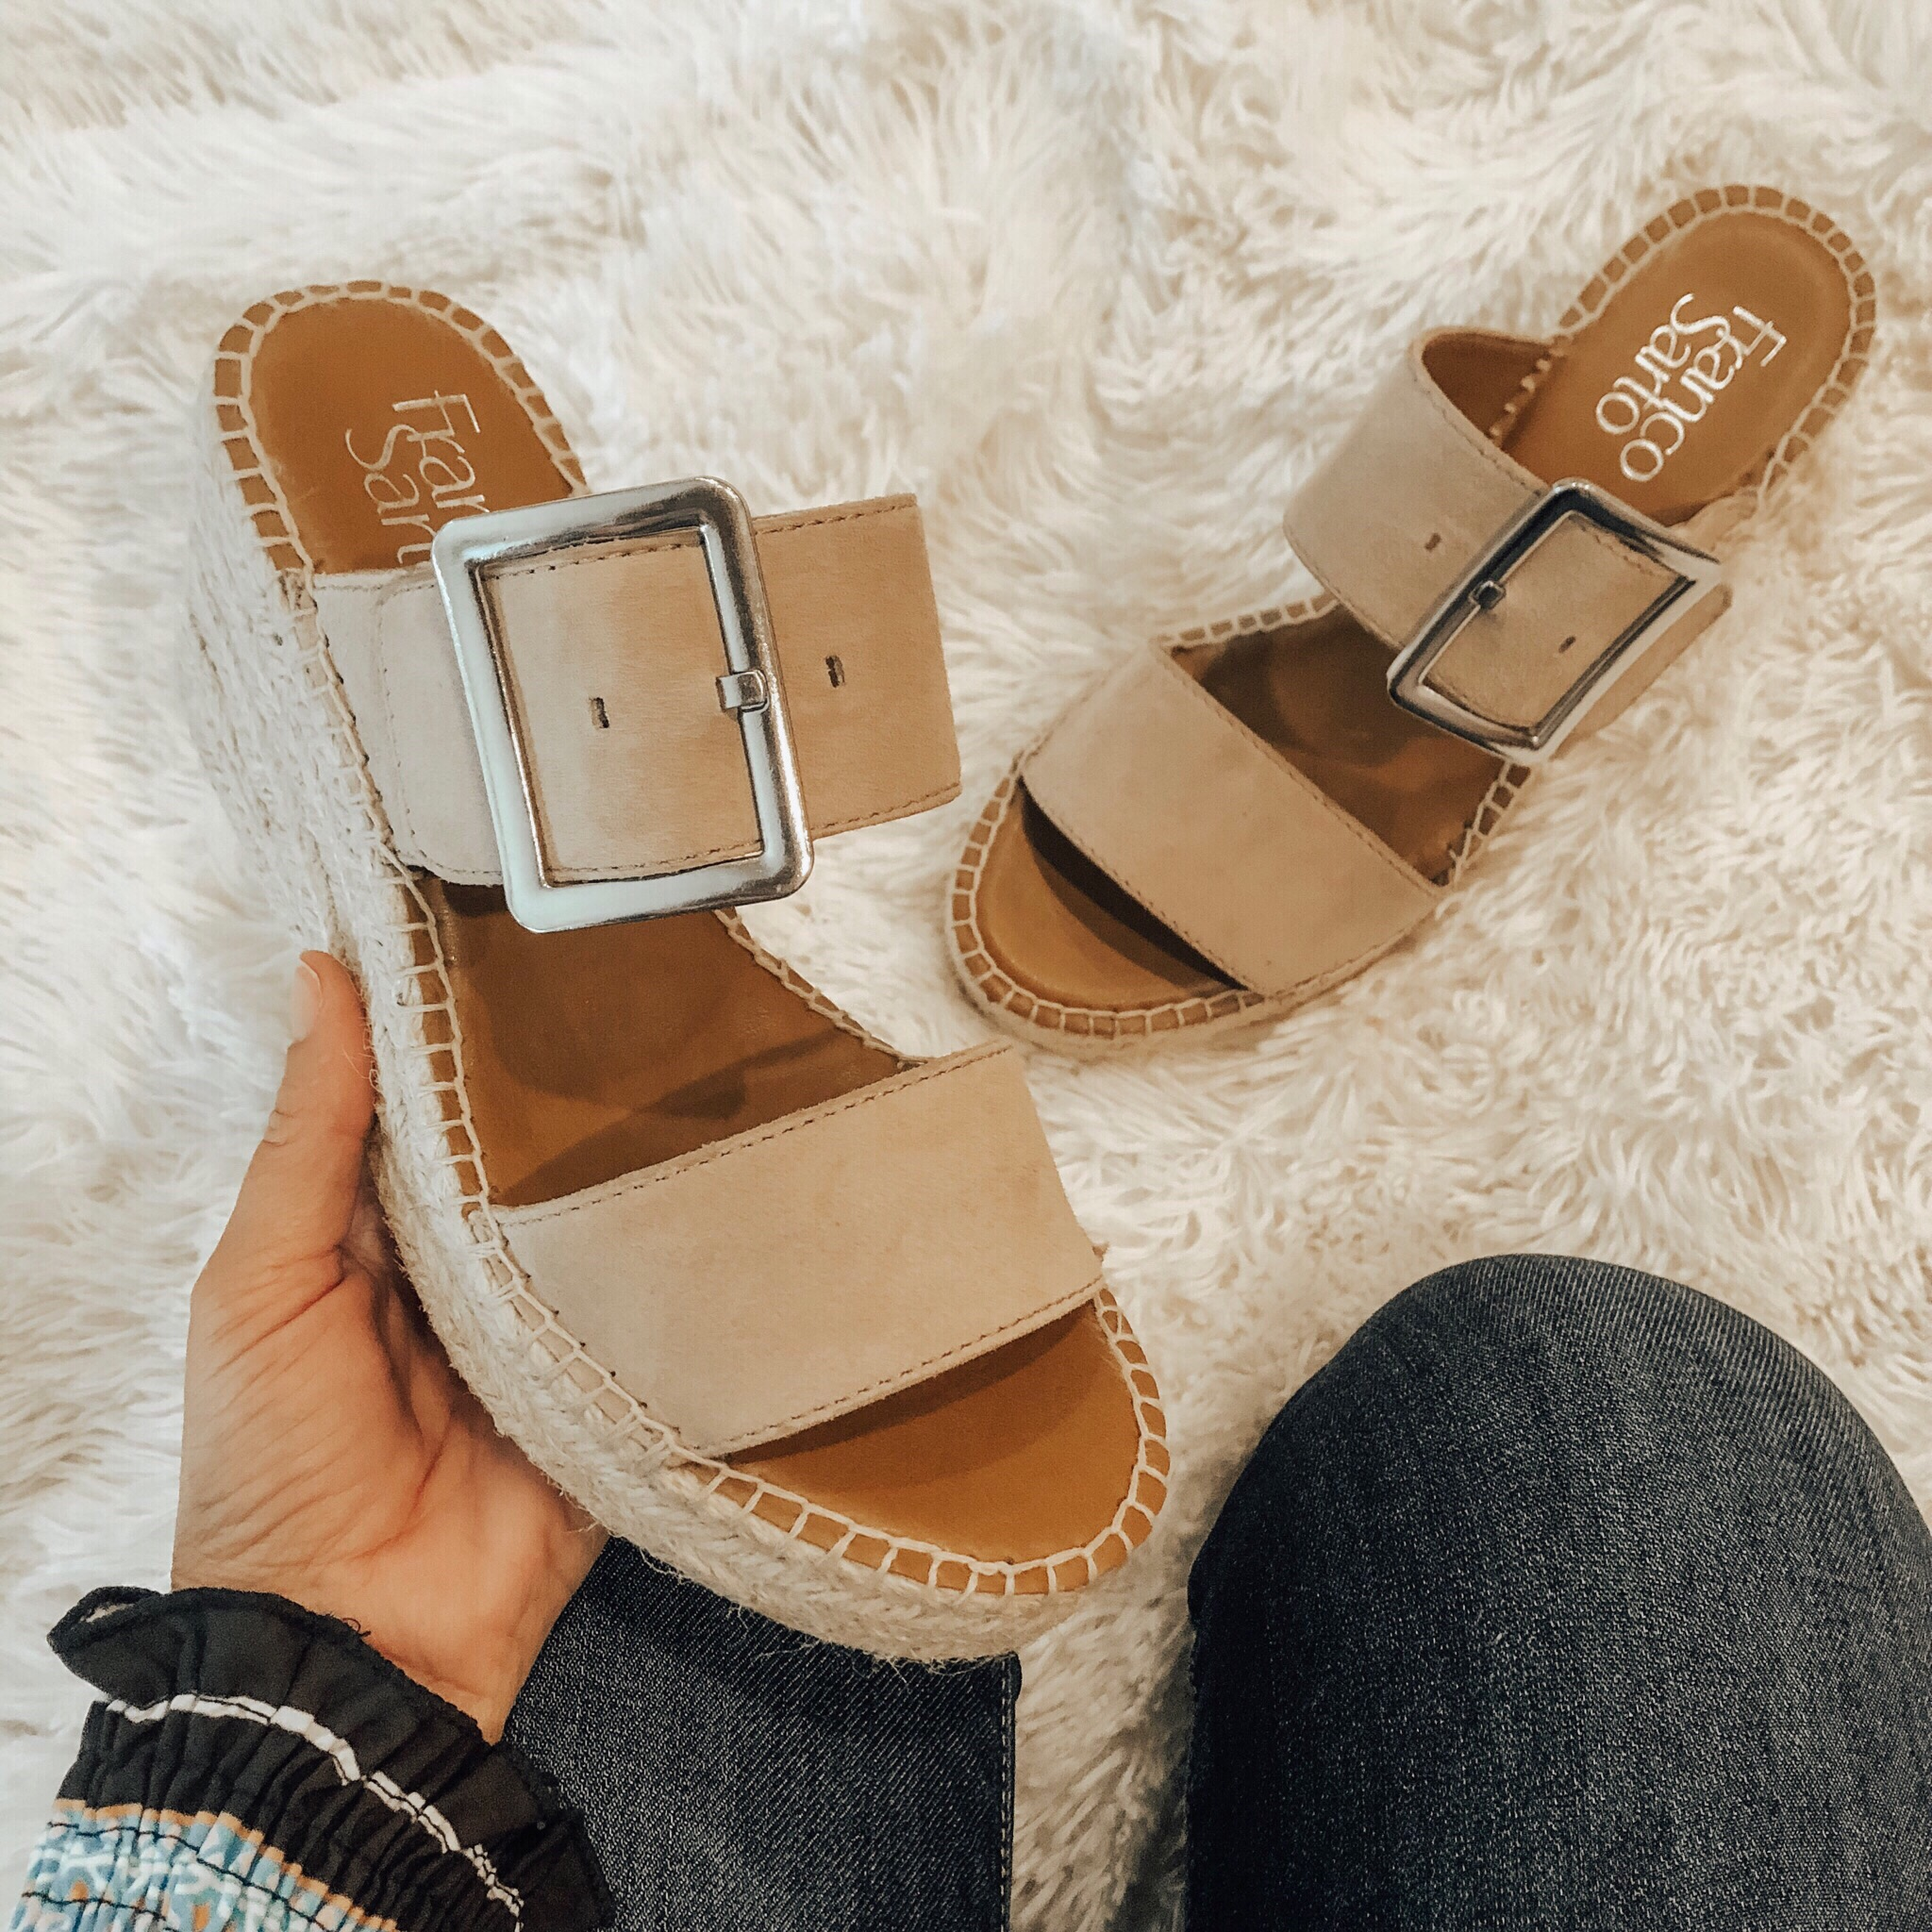 MAY TOP 10- Jaclyn De Leon Style + This month was all about the Amazon finds! 8 out of the top 10 were from Amazon and I'm not one bit surprised. I can't stop wearing these espadrilles becasue they're that good.